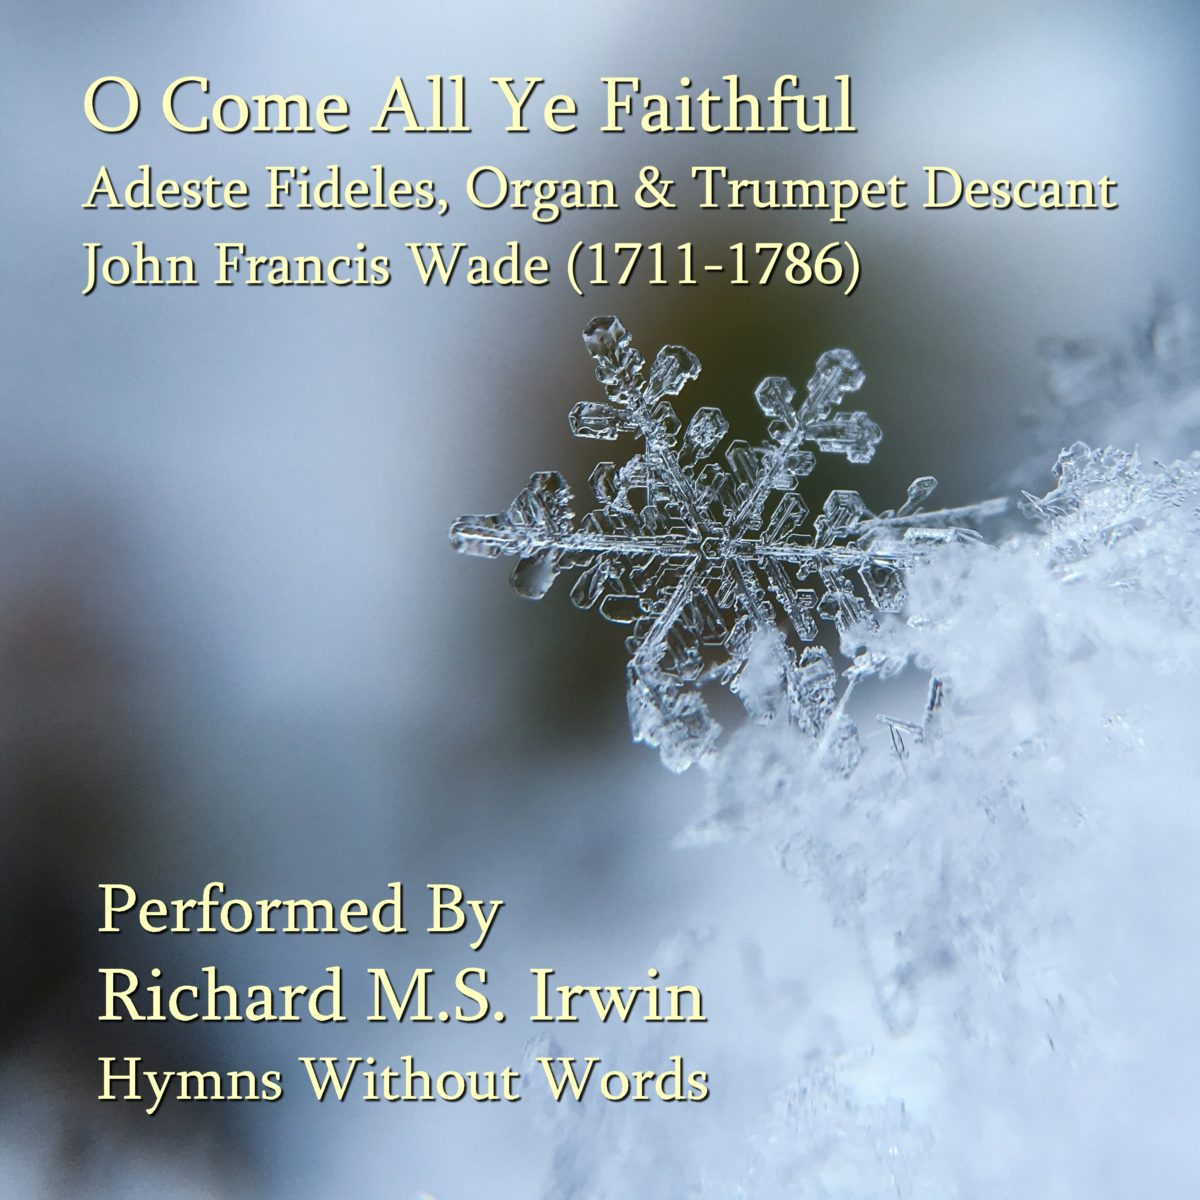 O Come All Ye Faithful (Adeste Fideles – 4 Verses) – Organ & Trumpet Descant